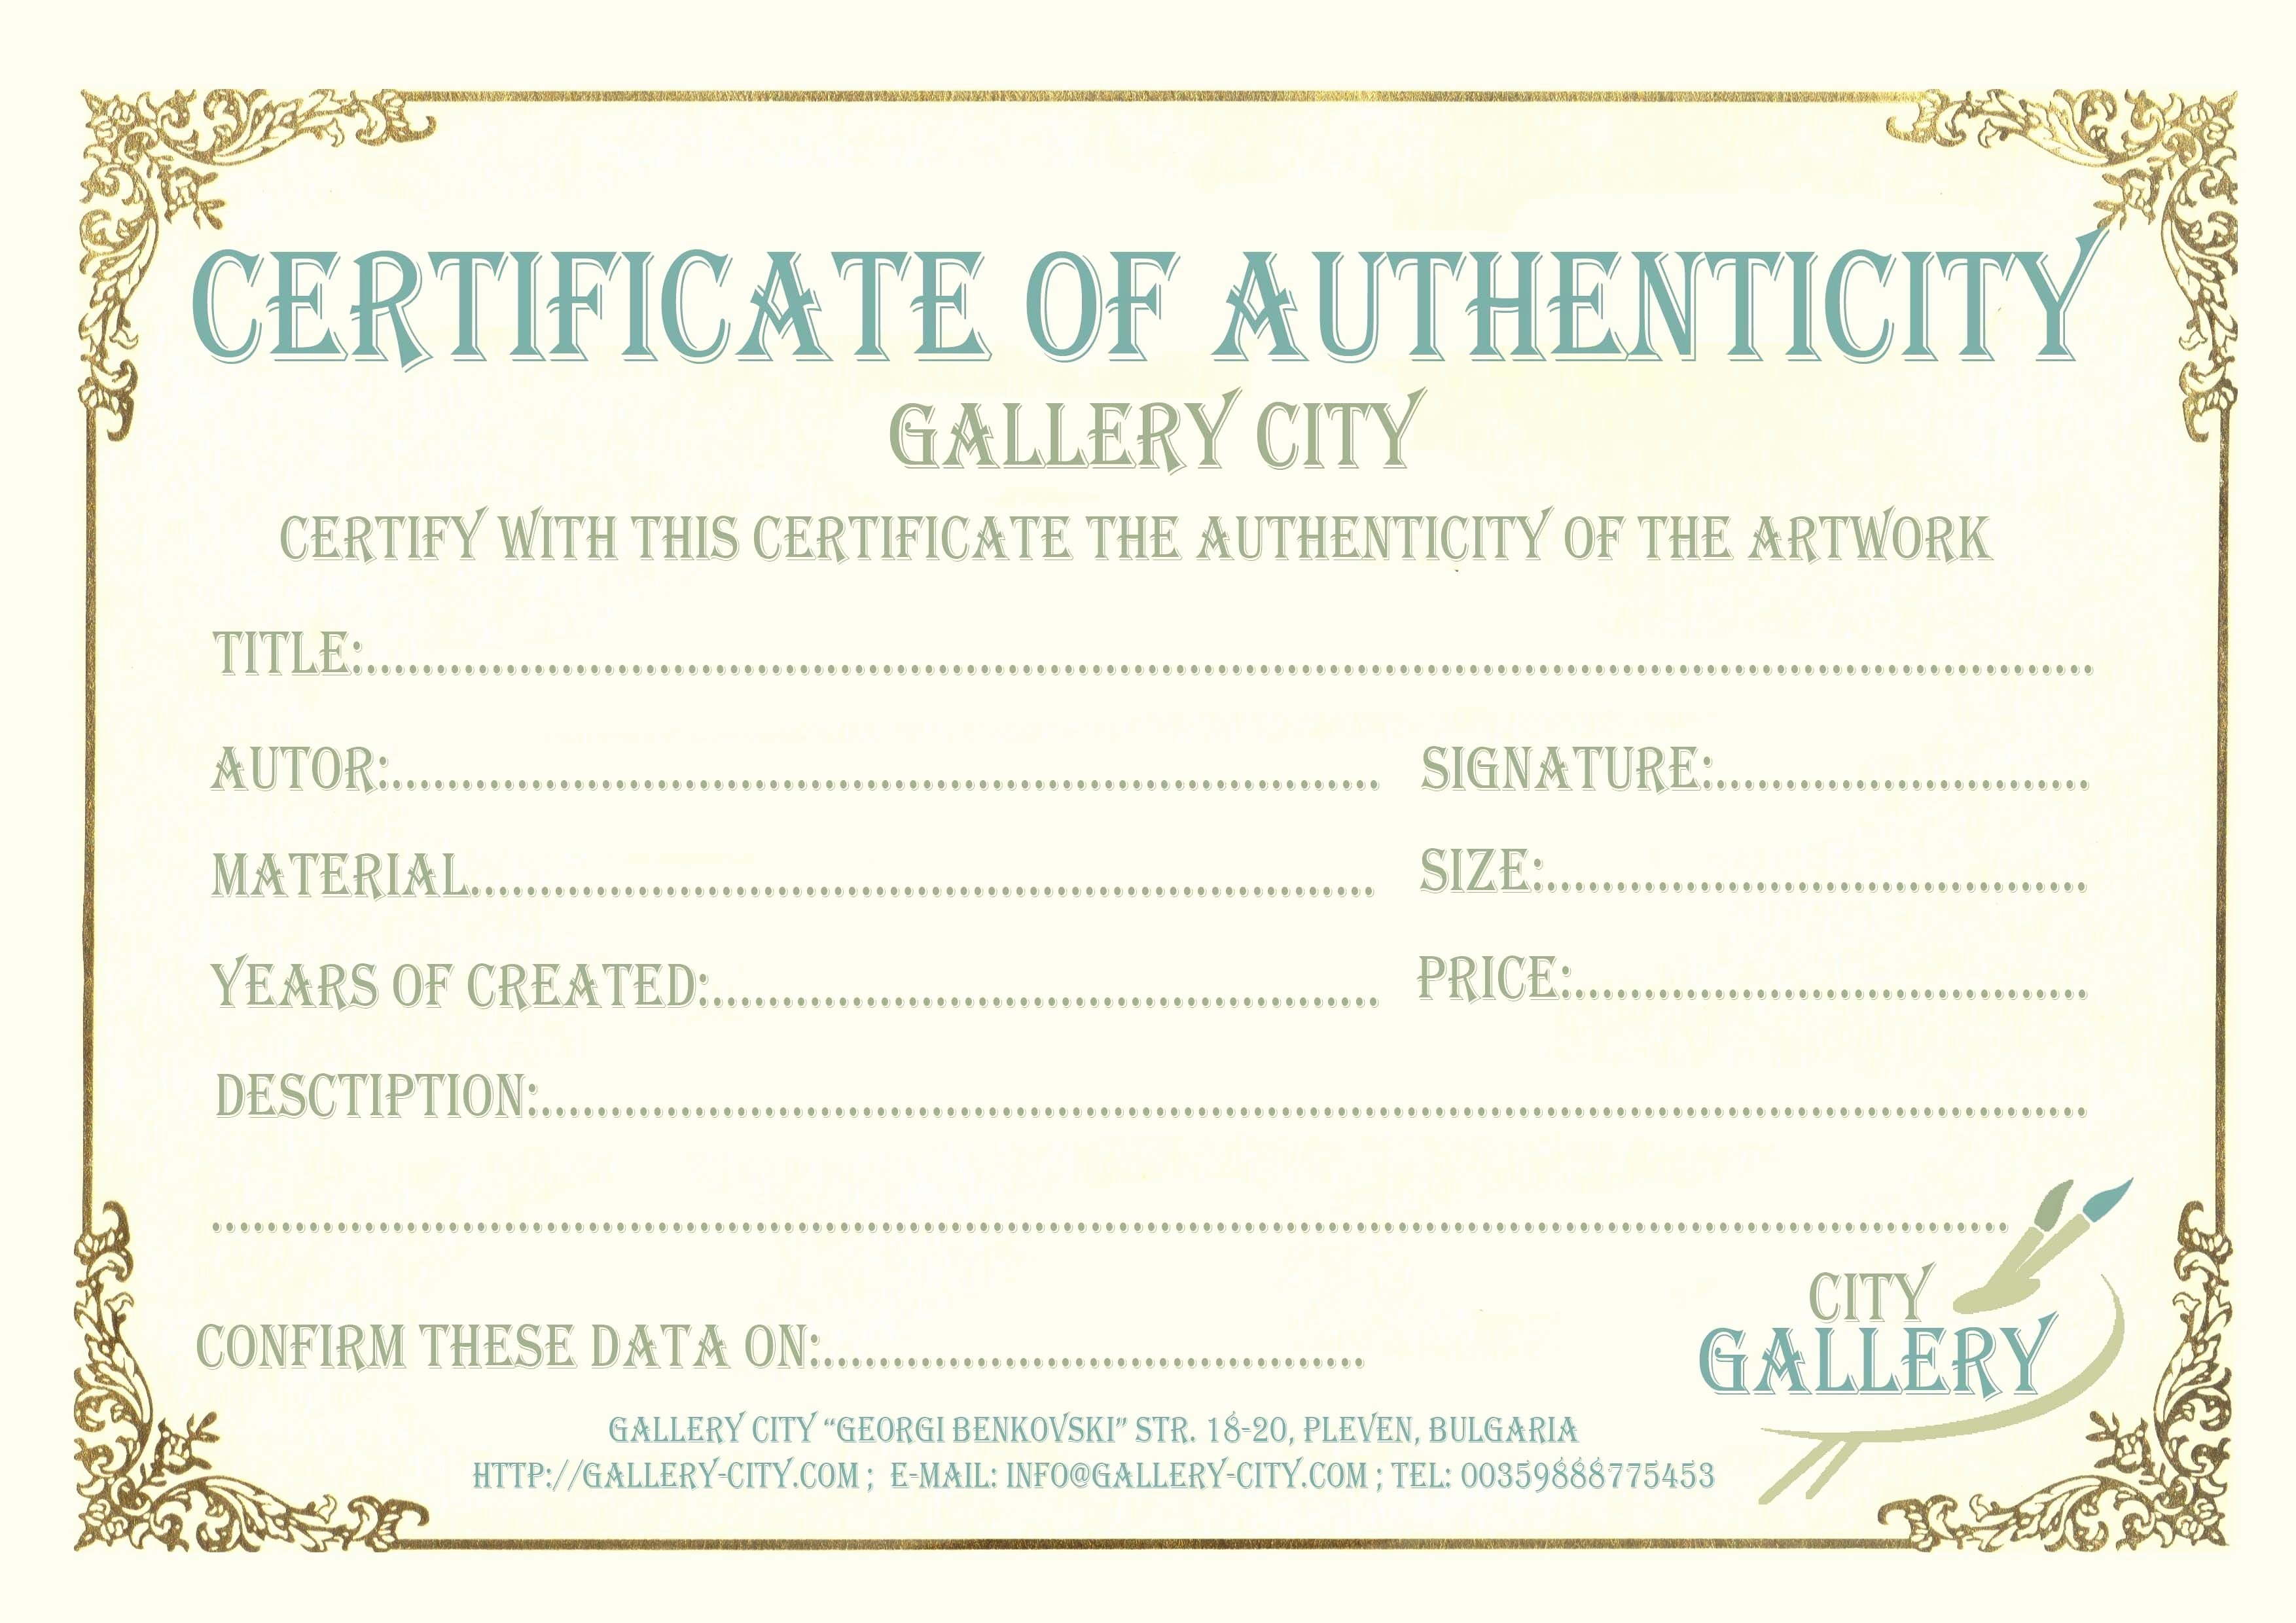 Certificate Of Authenticity Template Inspirational Certificate Authenticity Template Art Authenticity